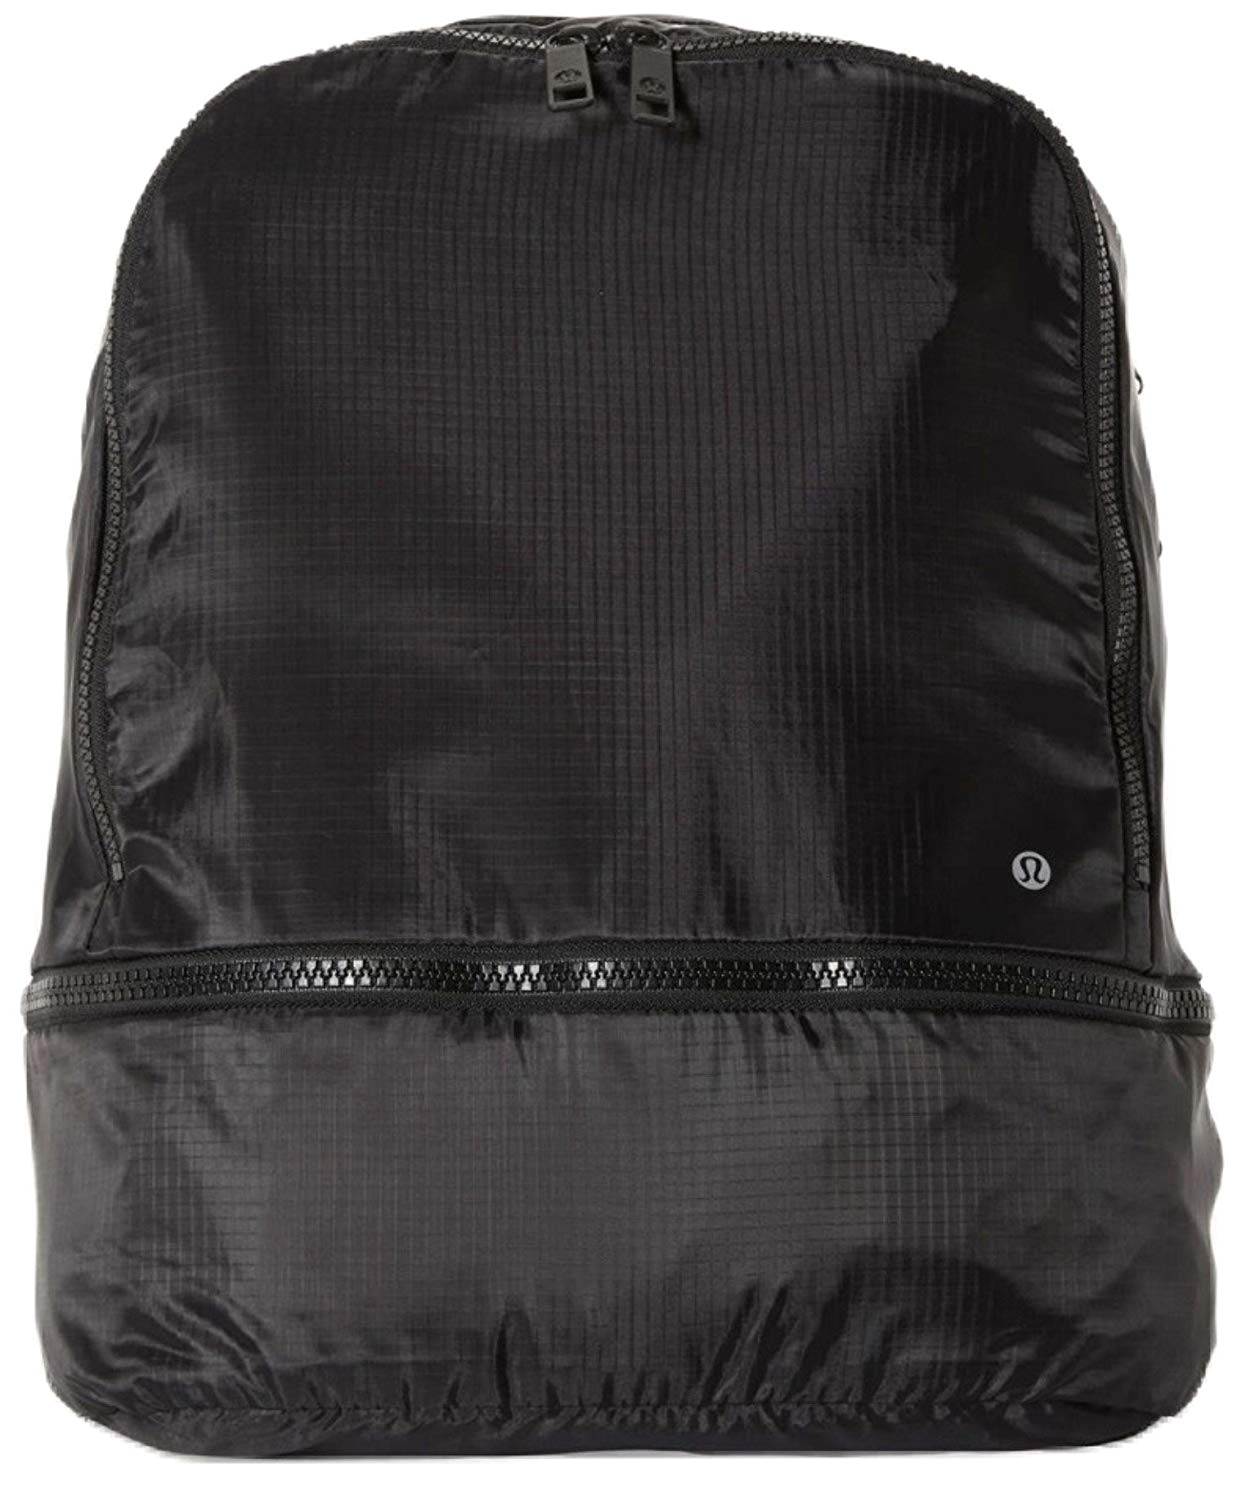 lululemon go lightly backpack black packable womens bag